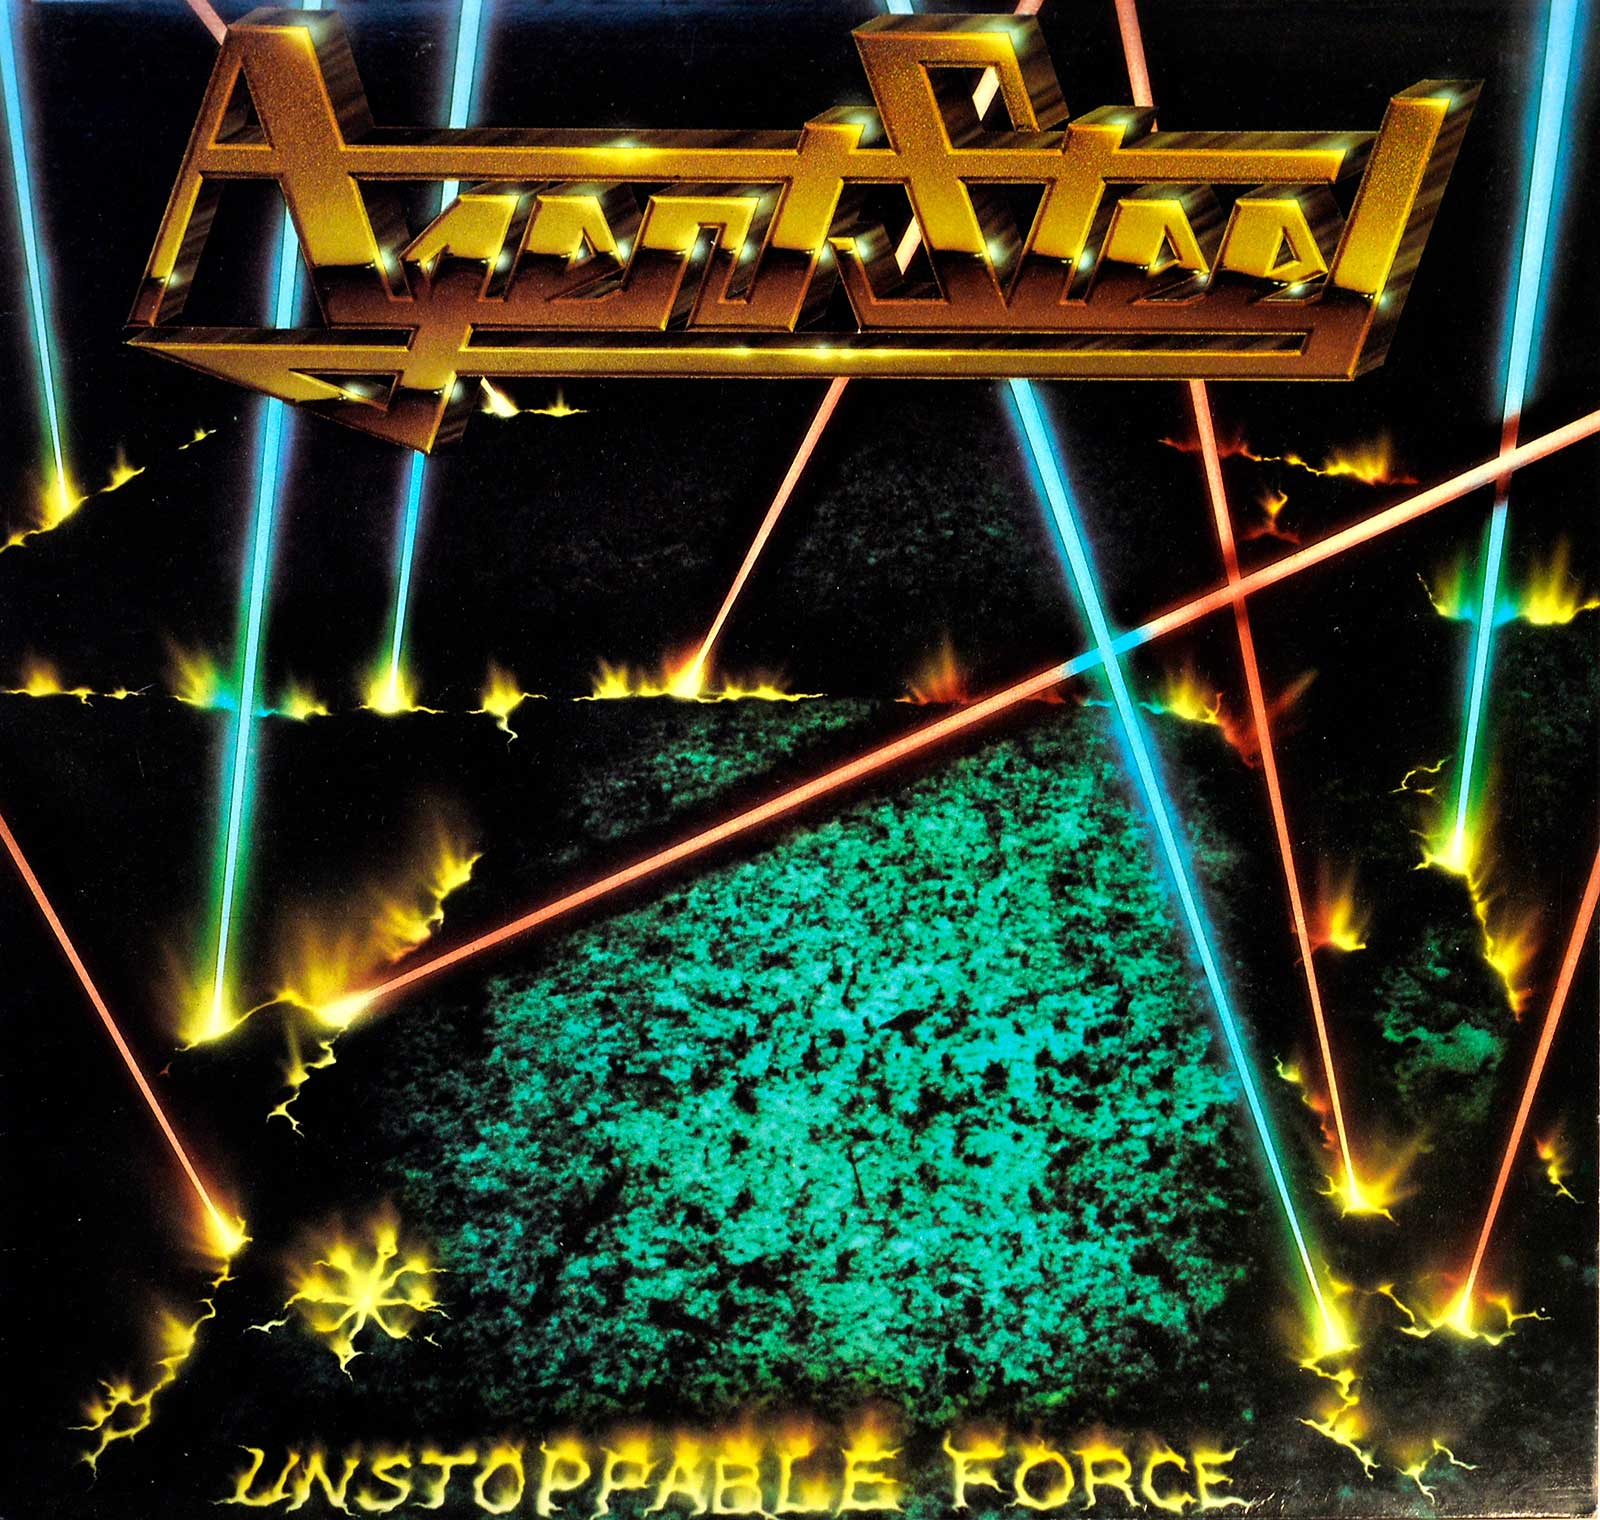 large photo of the album front cover of: Unstoppable Force